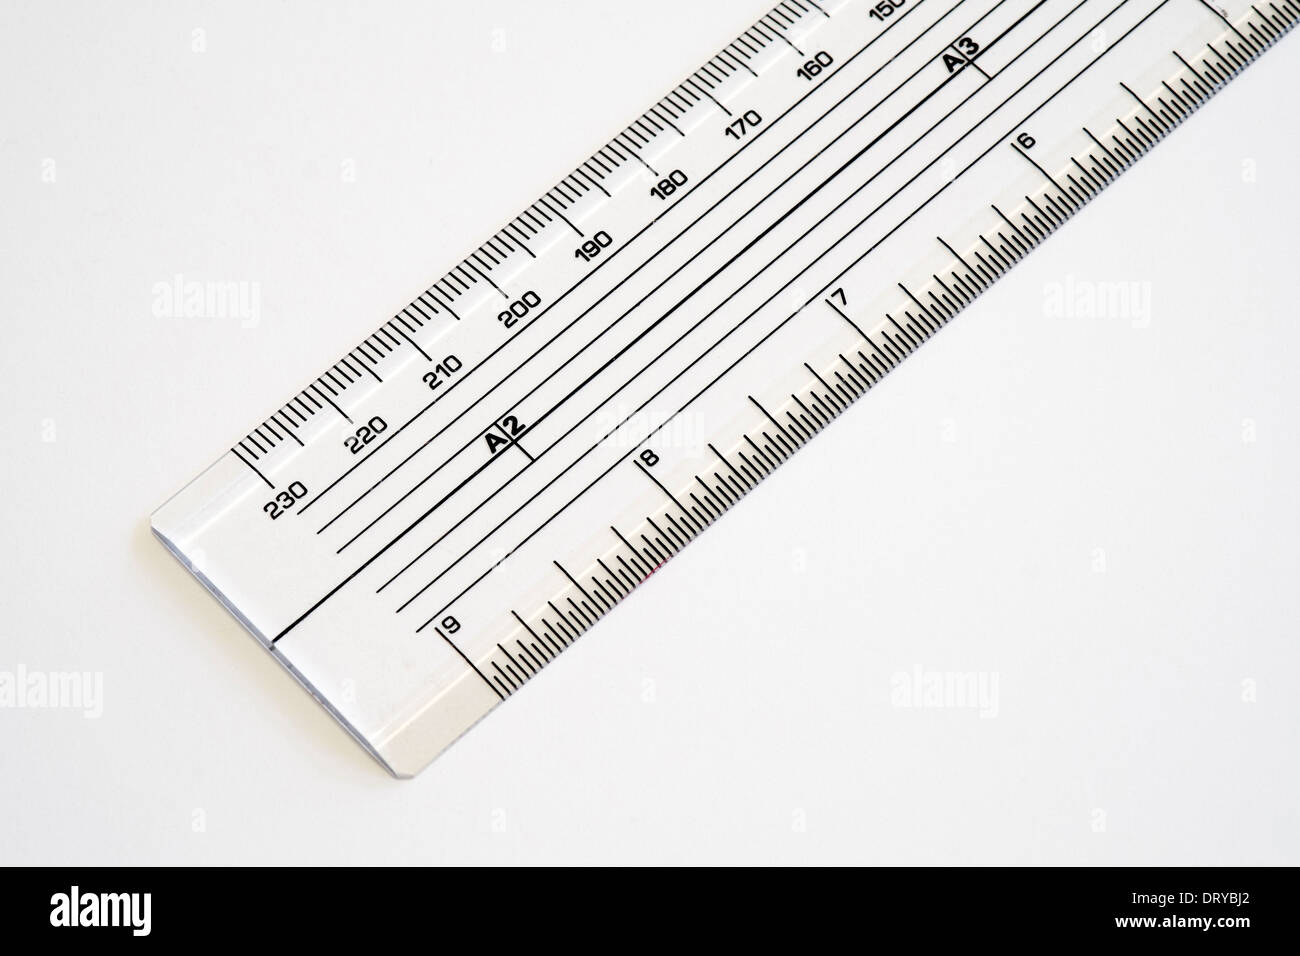 transparent acrylic scale ruler showing inches and millimeters on stock photo royalty free. Black Bedroom Furniture Sets. Home Design Ideas